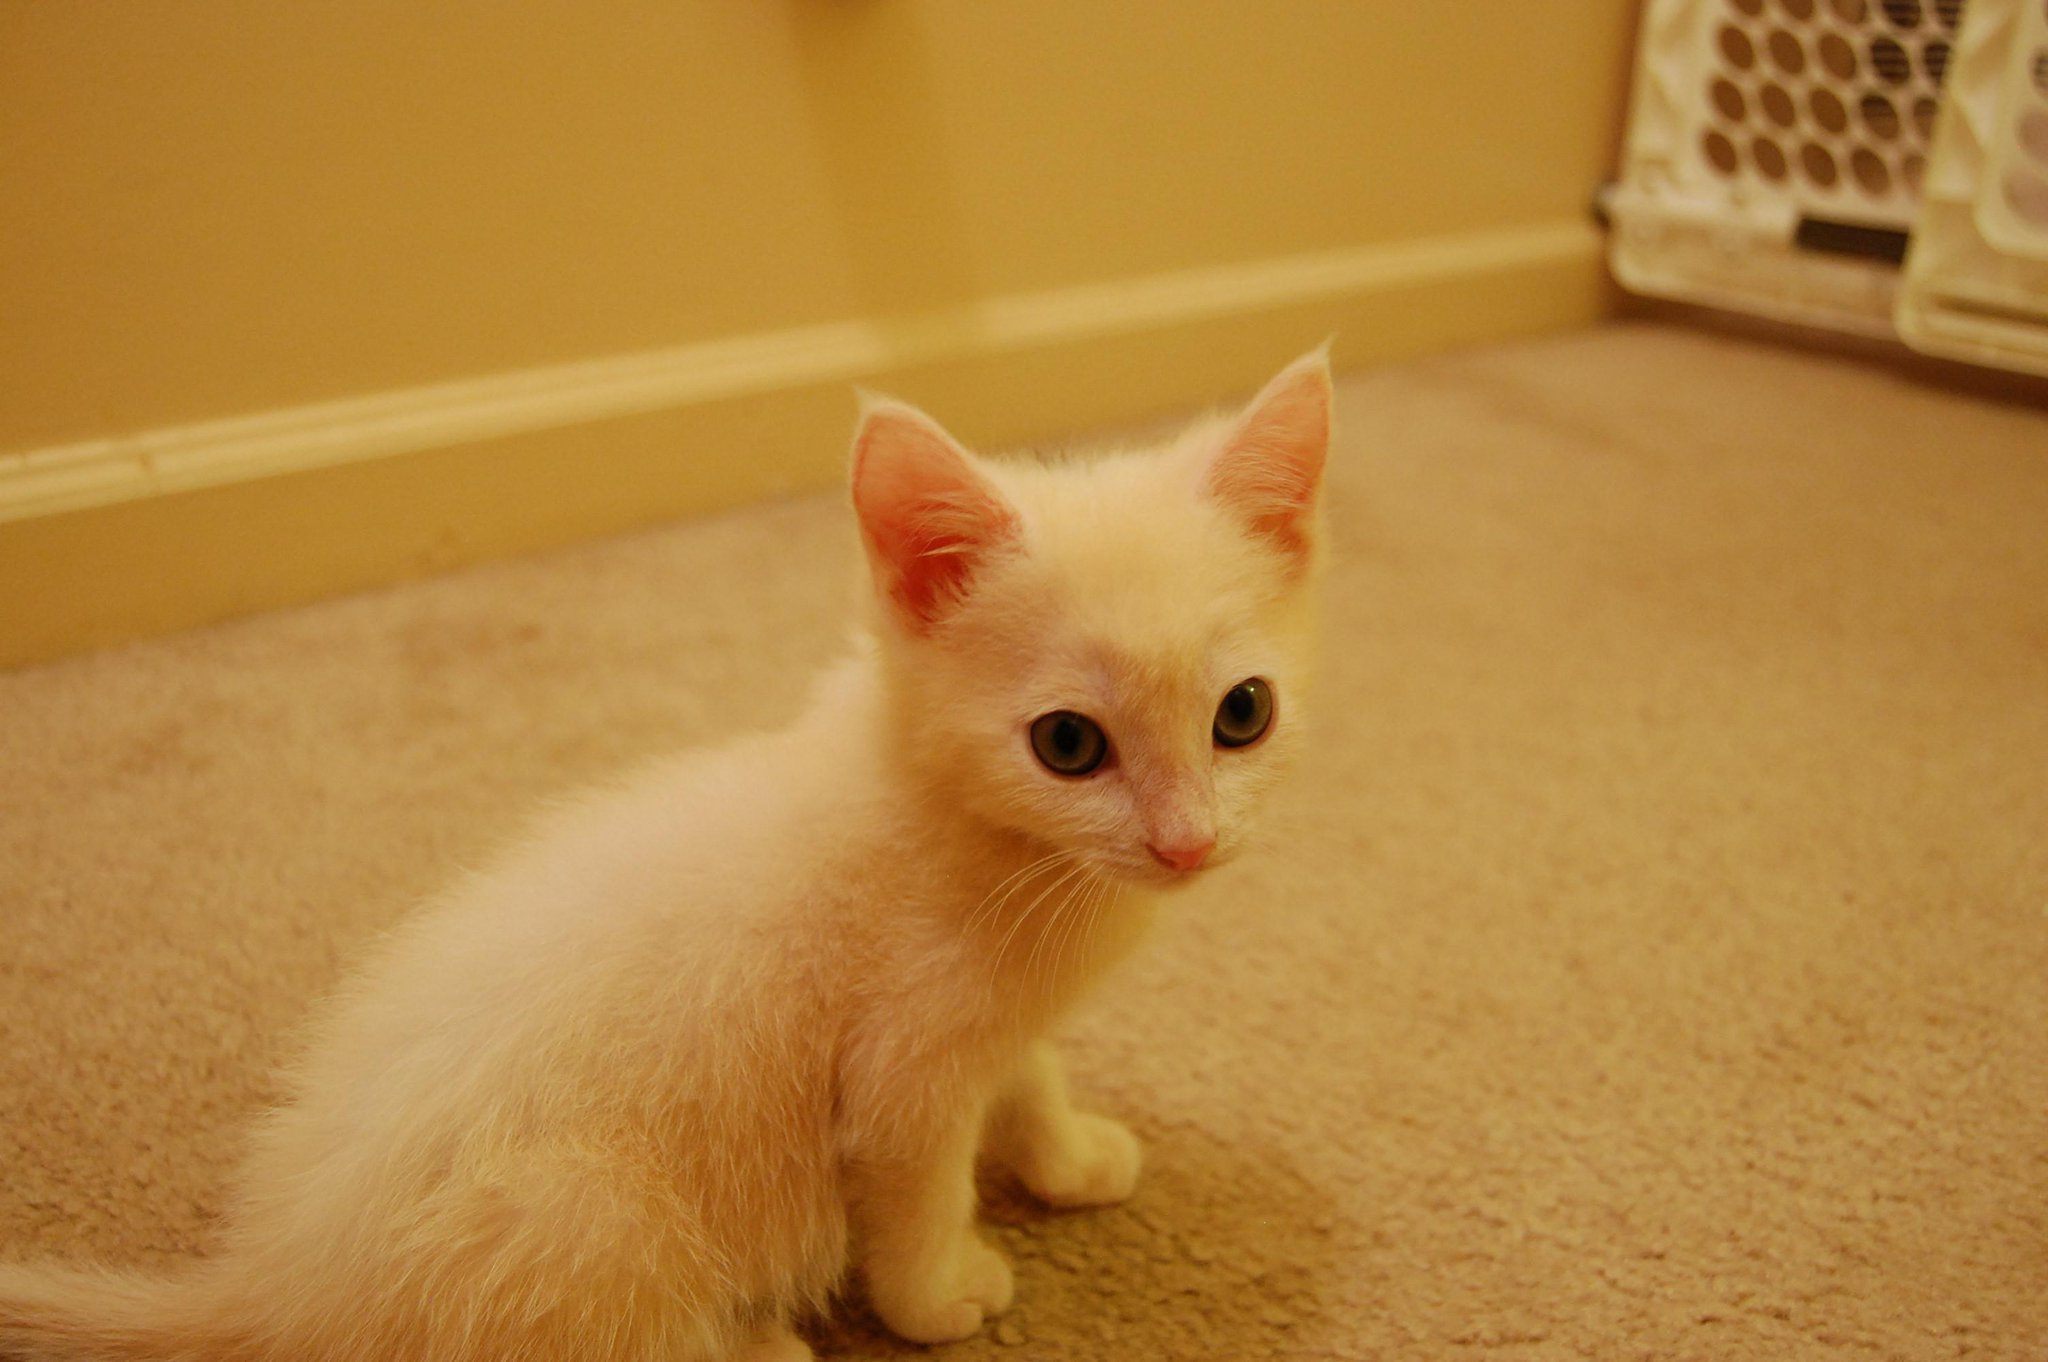 Dot, in his wee-kitten years. http://t.co/FvLBQrYp2S